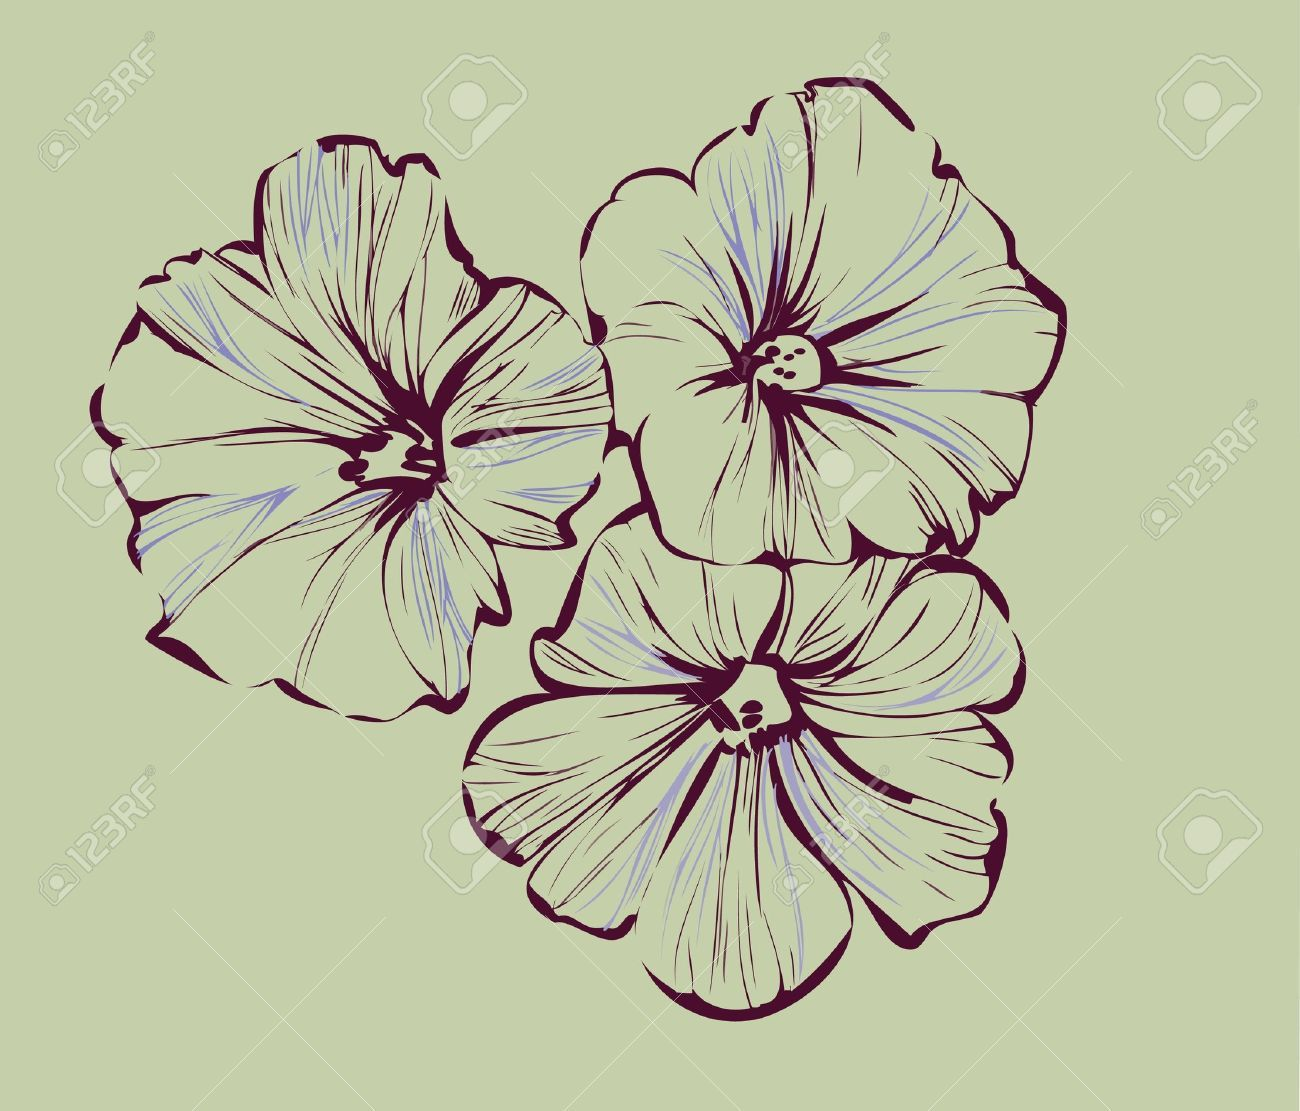 Morning Glory Stock Vector Illustration And Royalty Free